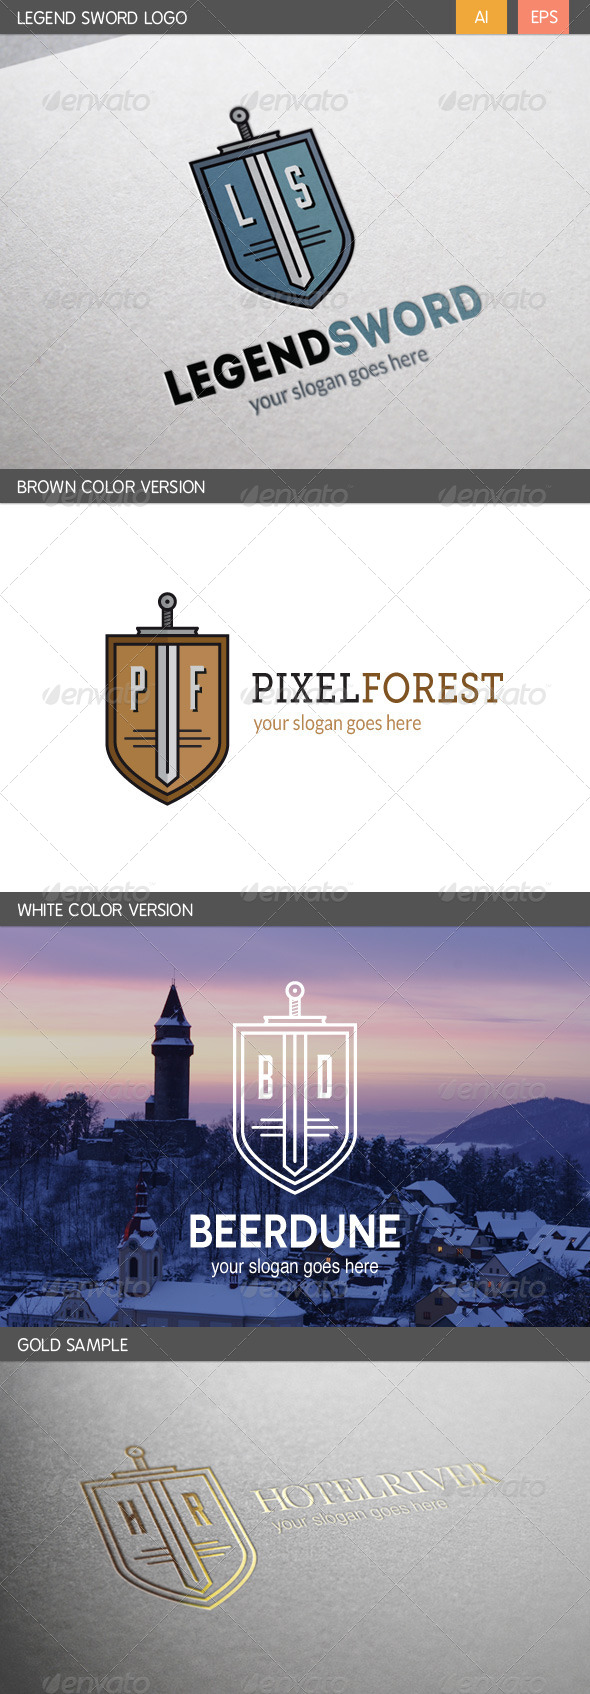 GraphicRiver Legend Sword Logo 6398690